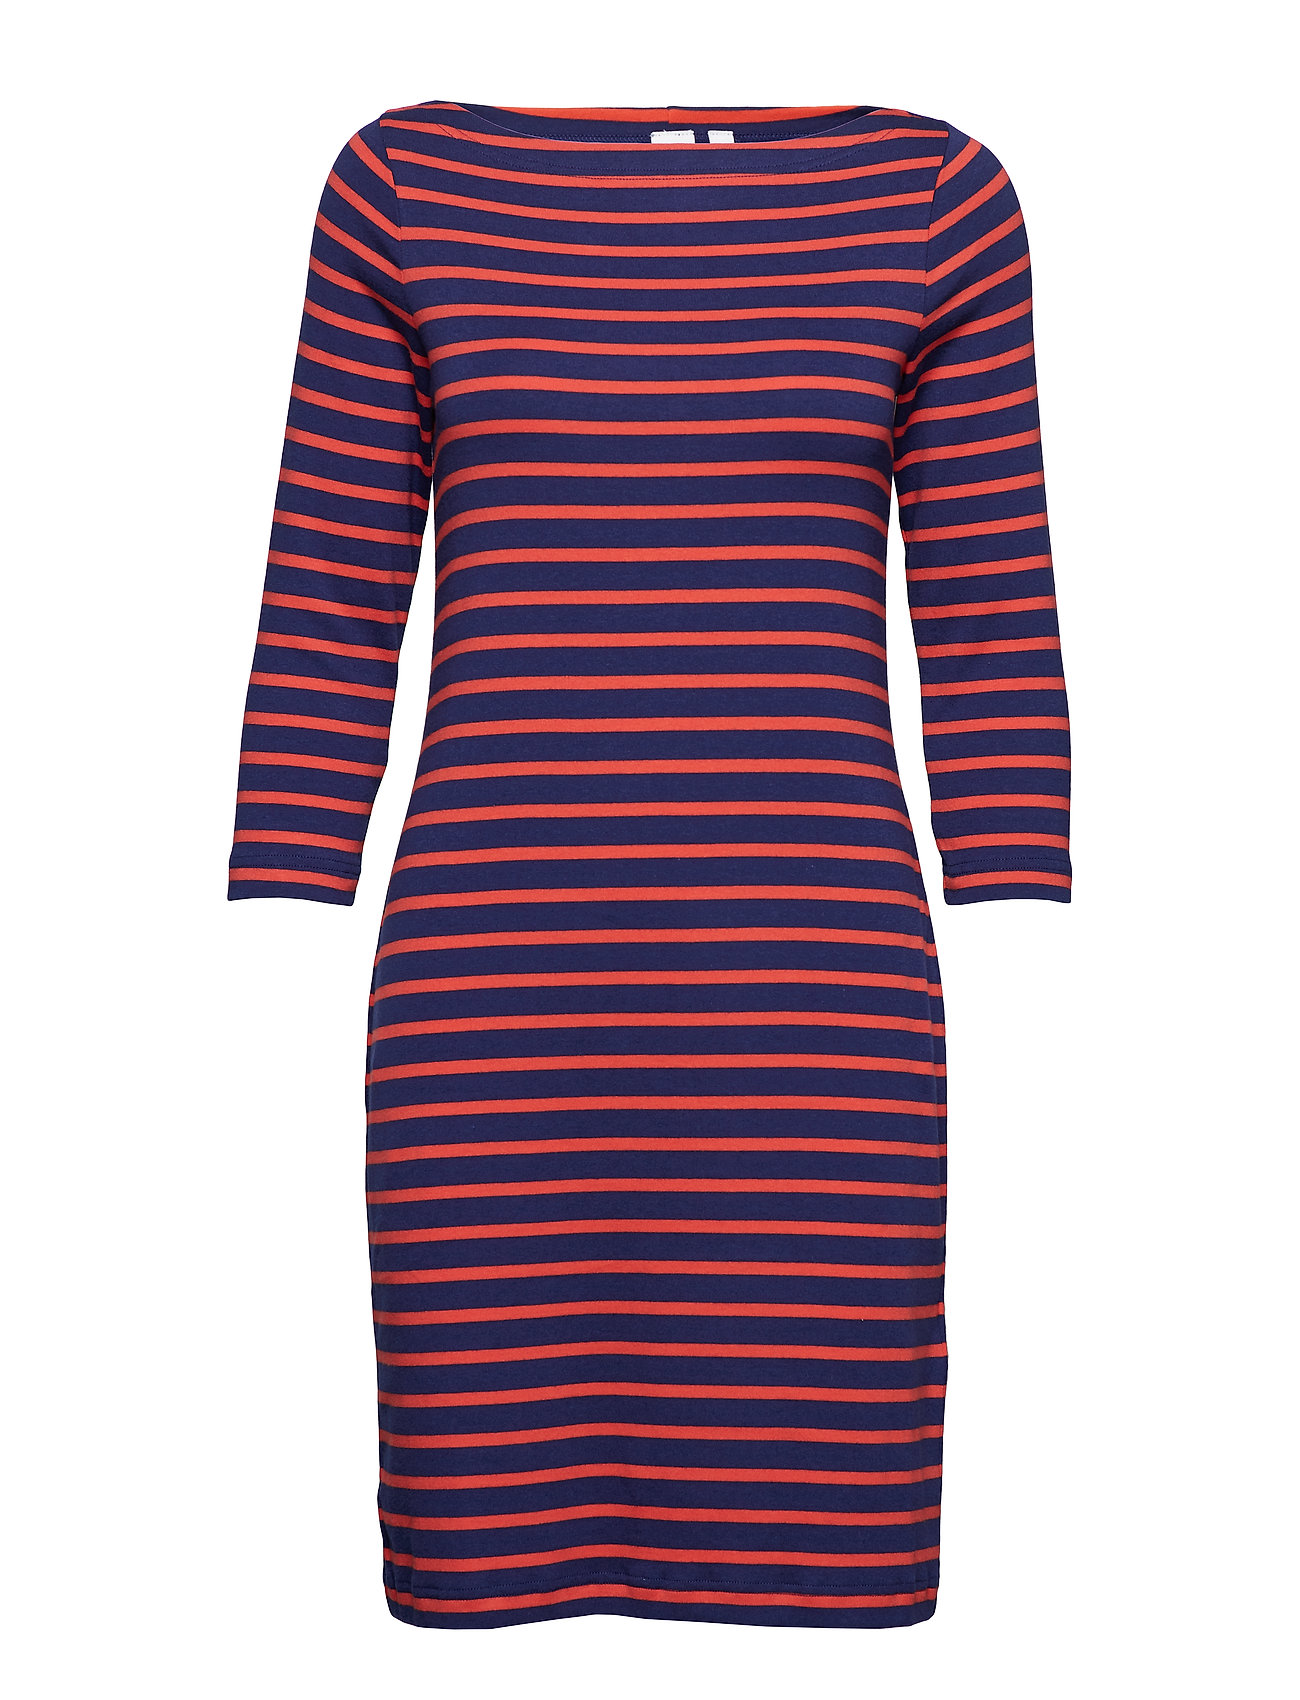 GAP Modern Boatneck Dress - PINK STRIPE